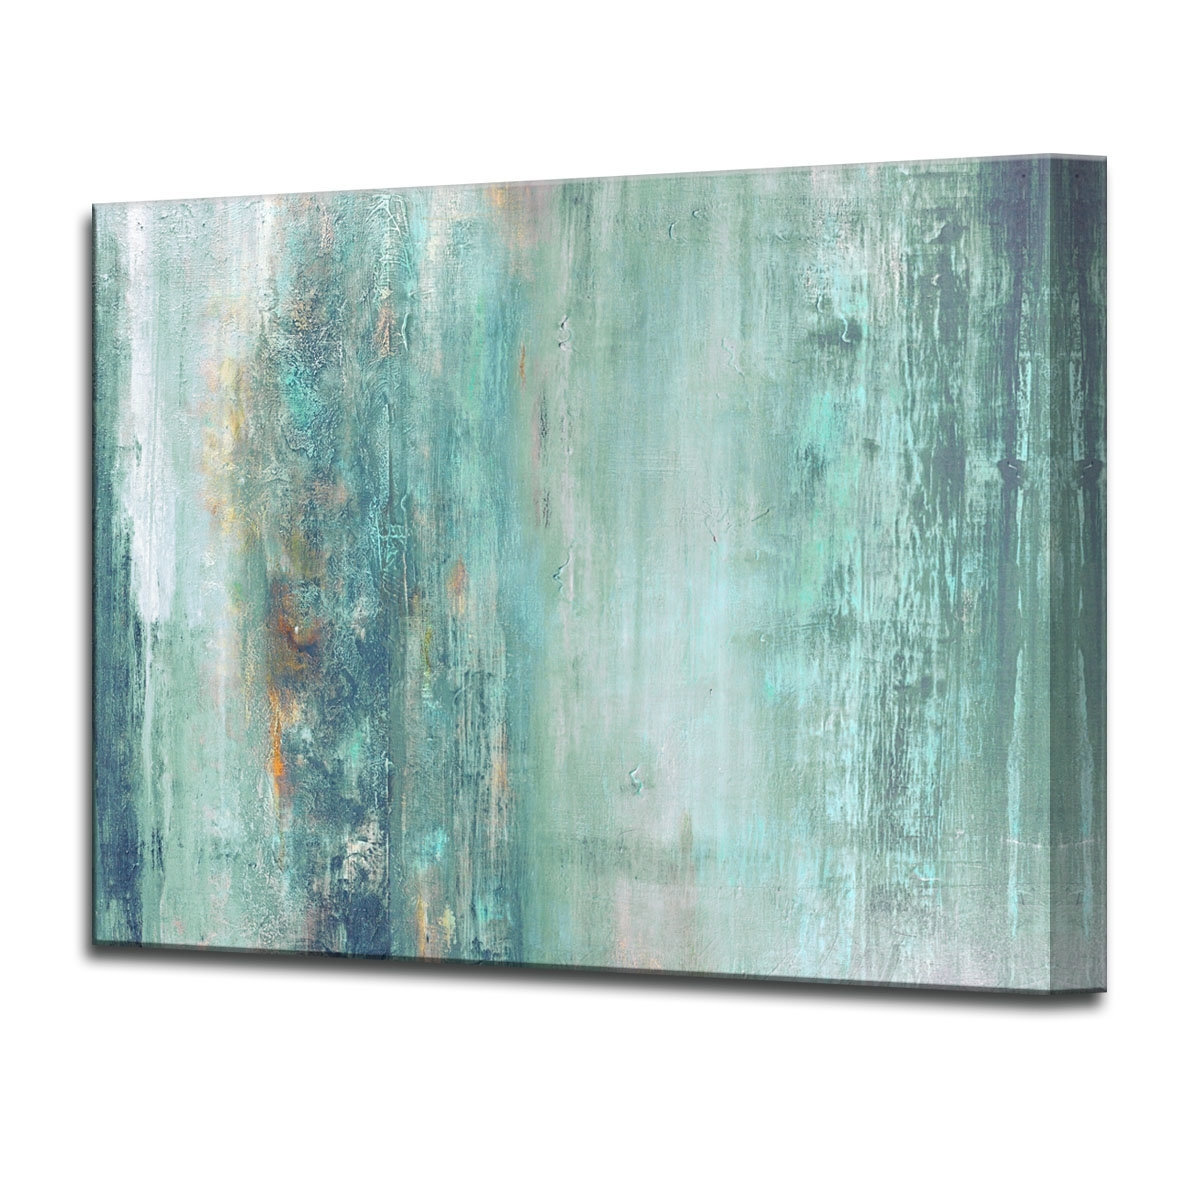 Preferred Canvas Wall Art At Wayfair Within Beachcrest Home 'abstract Spa' Framed Graphic Art Print On Canvas (View 10 of 15)